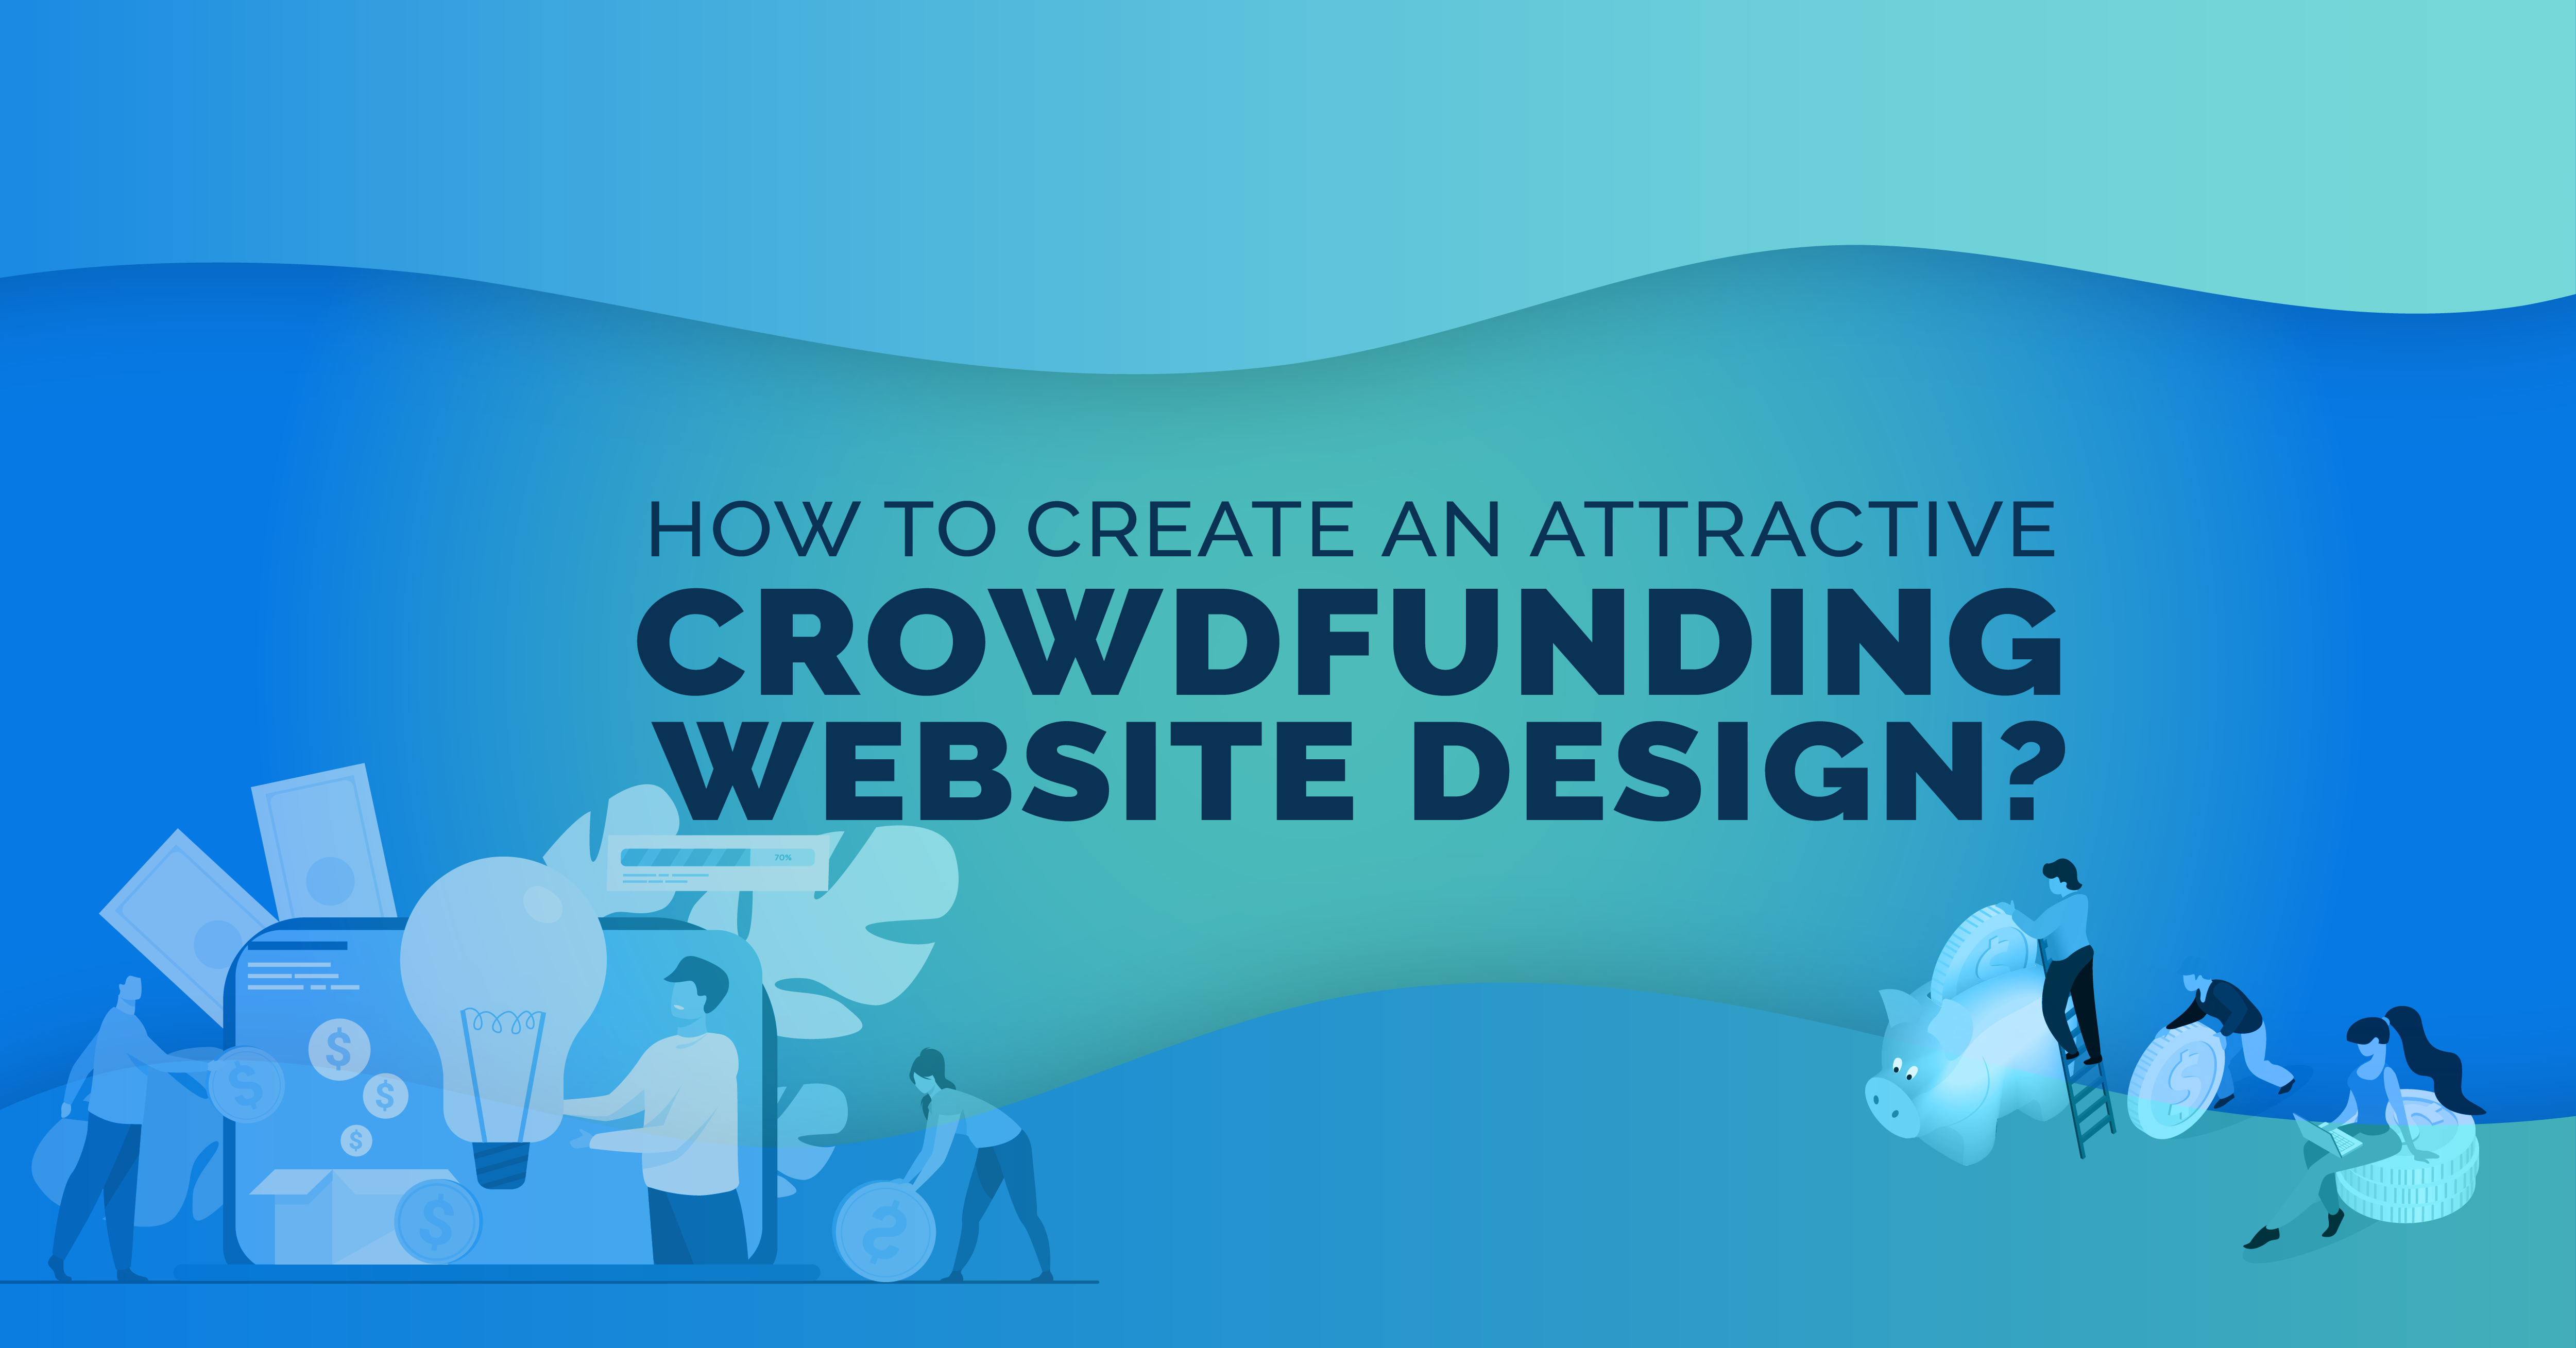 How to Create an Attractive Crowdfunding Website Design?